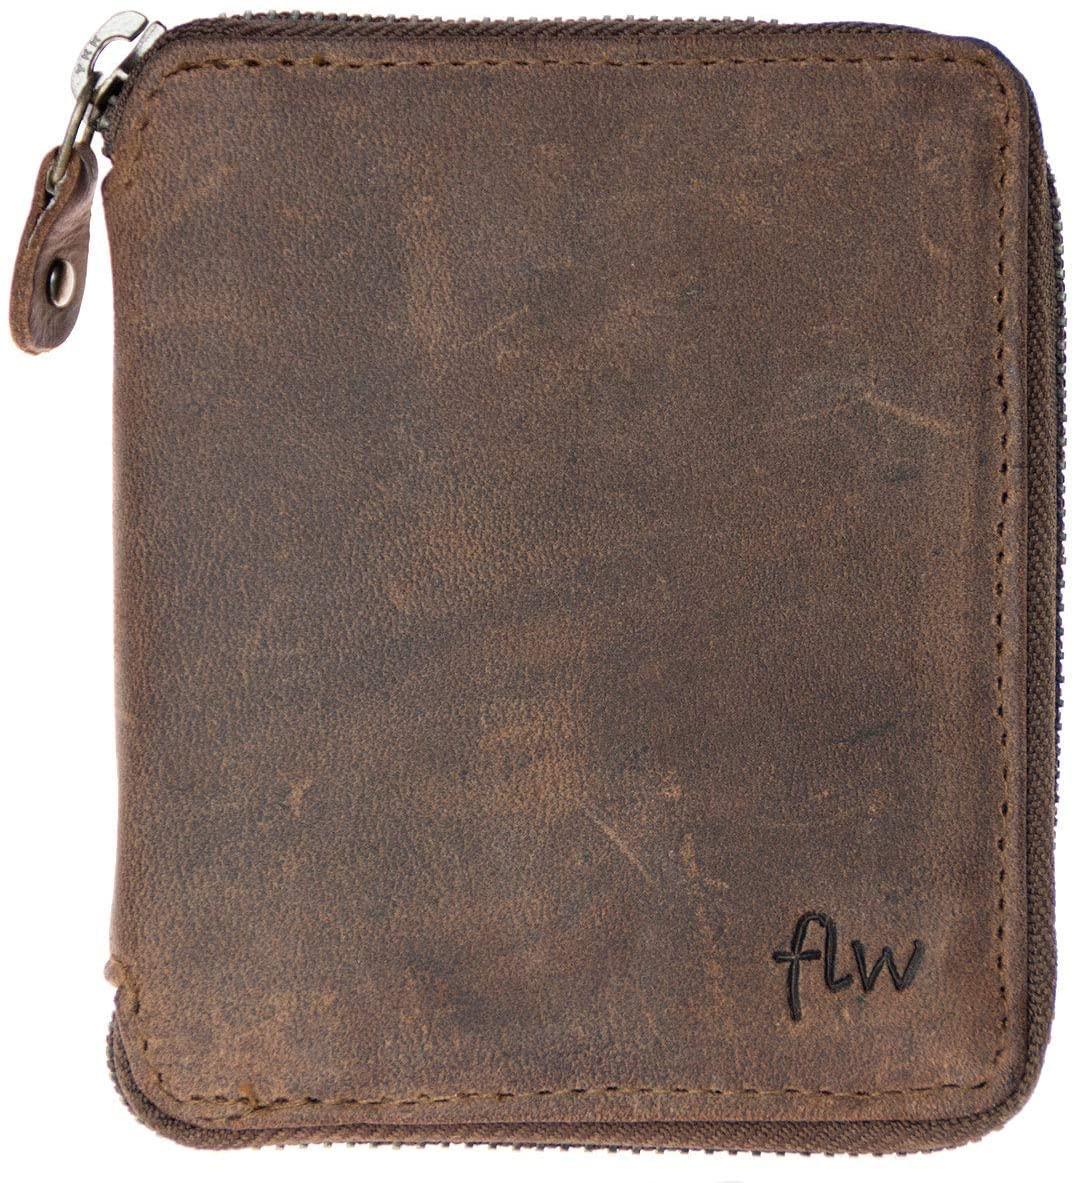 Small Genuine Leather Wallet With Metal Zipper Around